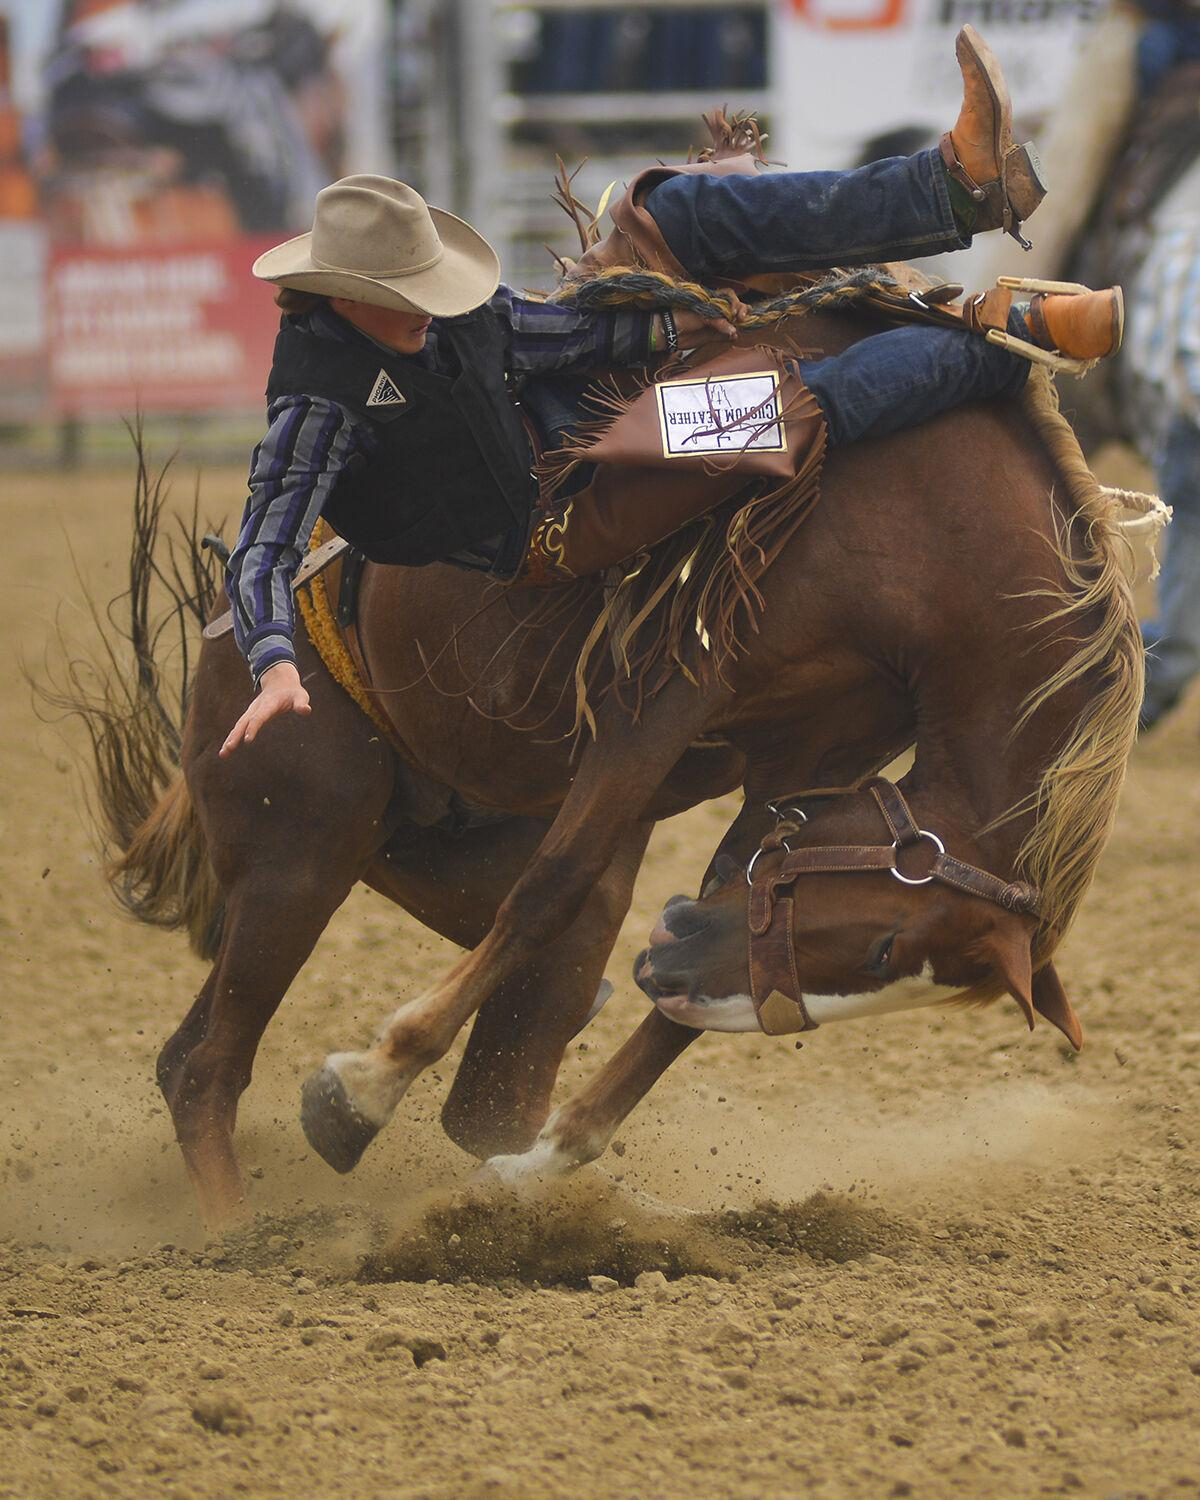 Norris Graves looks down as he begins falling while his horse curls